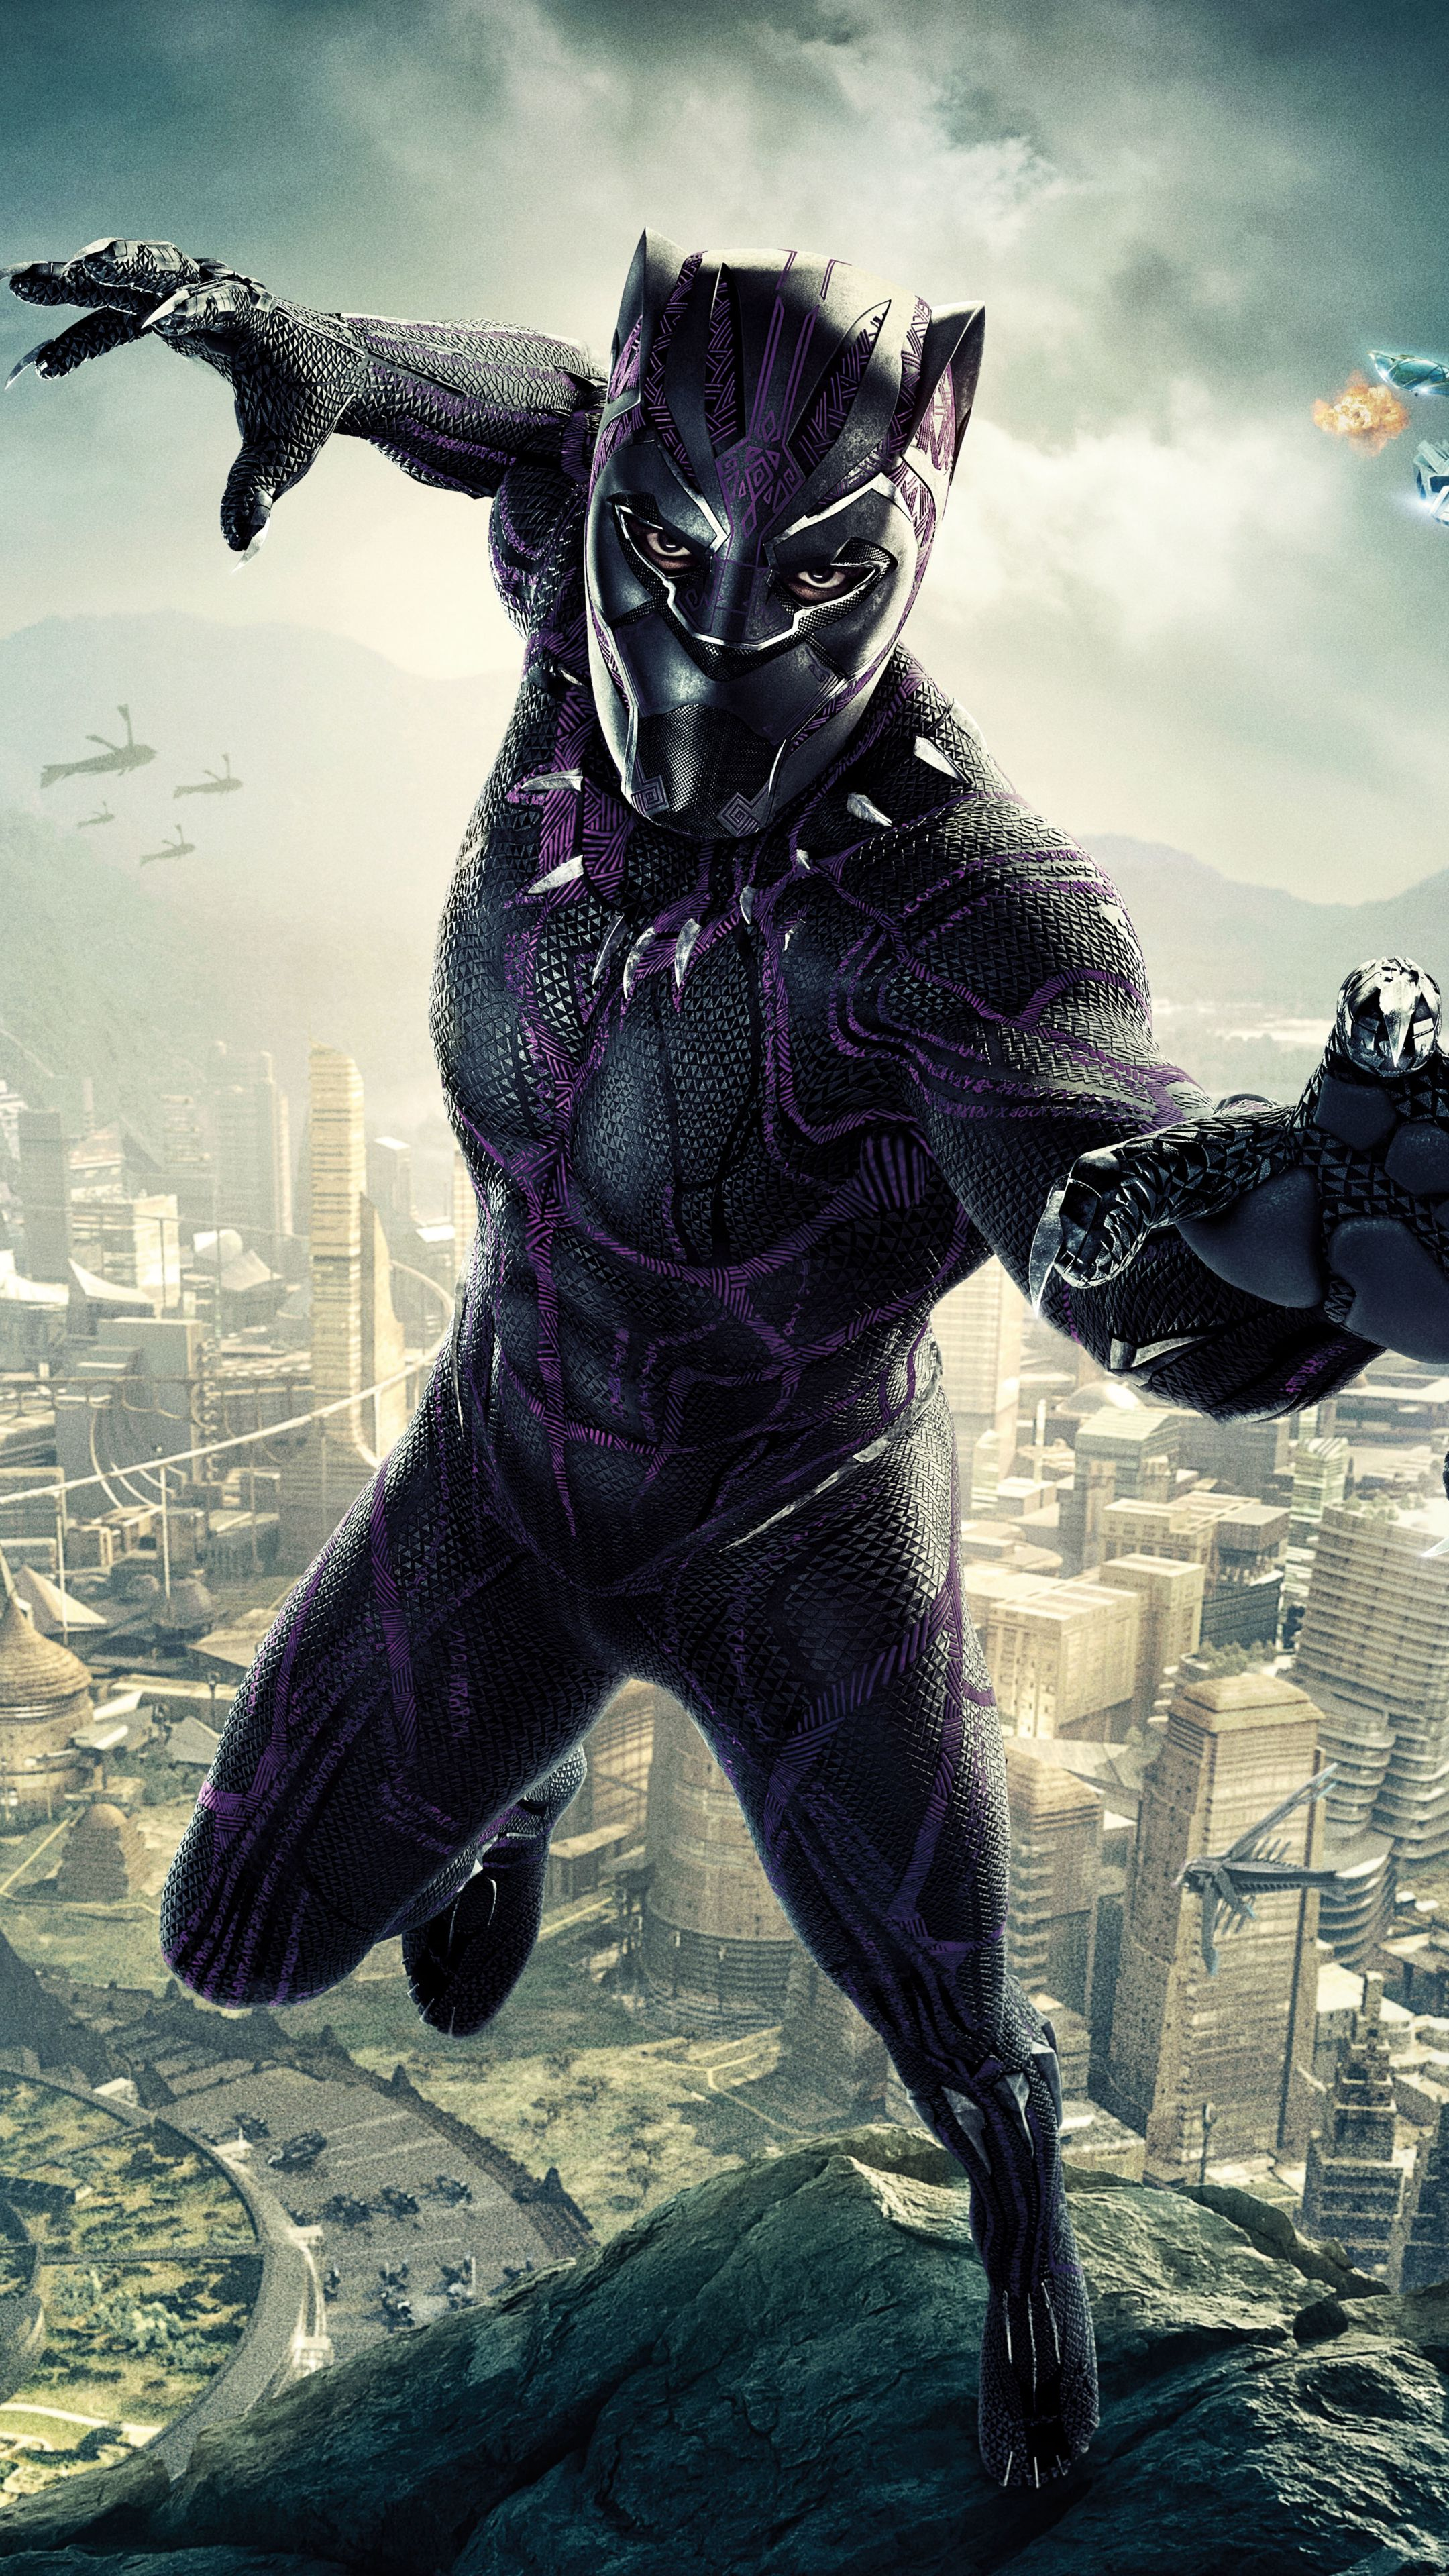 Black Panther 4k Wallpaper Posted By John Anderson